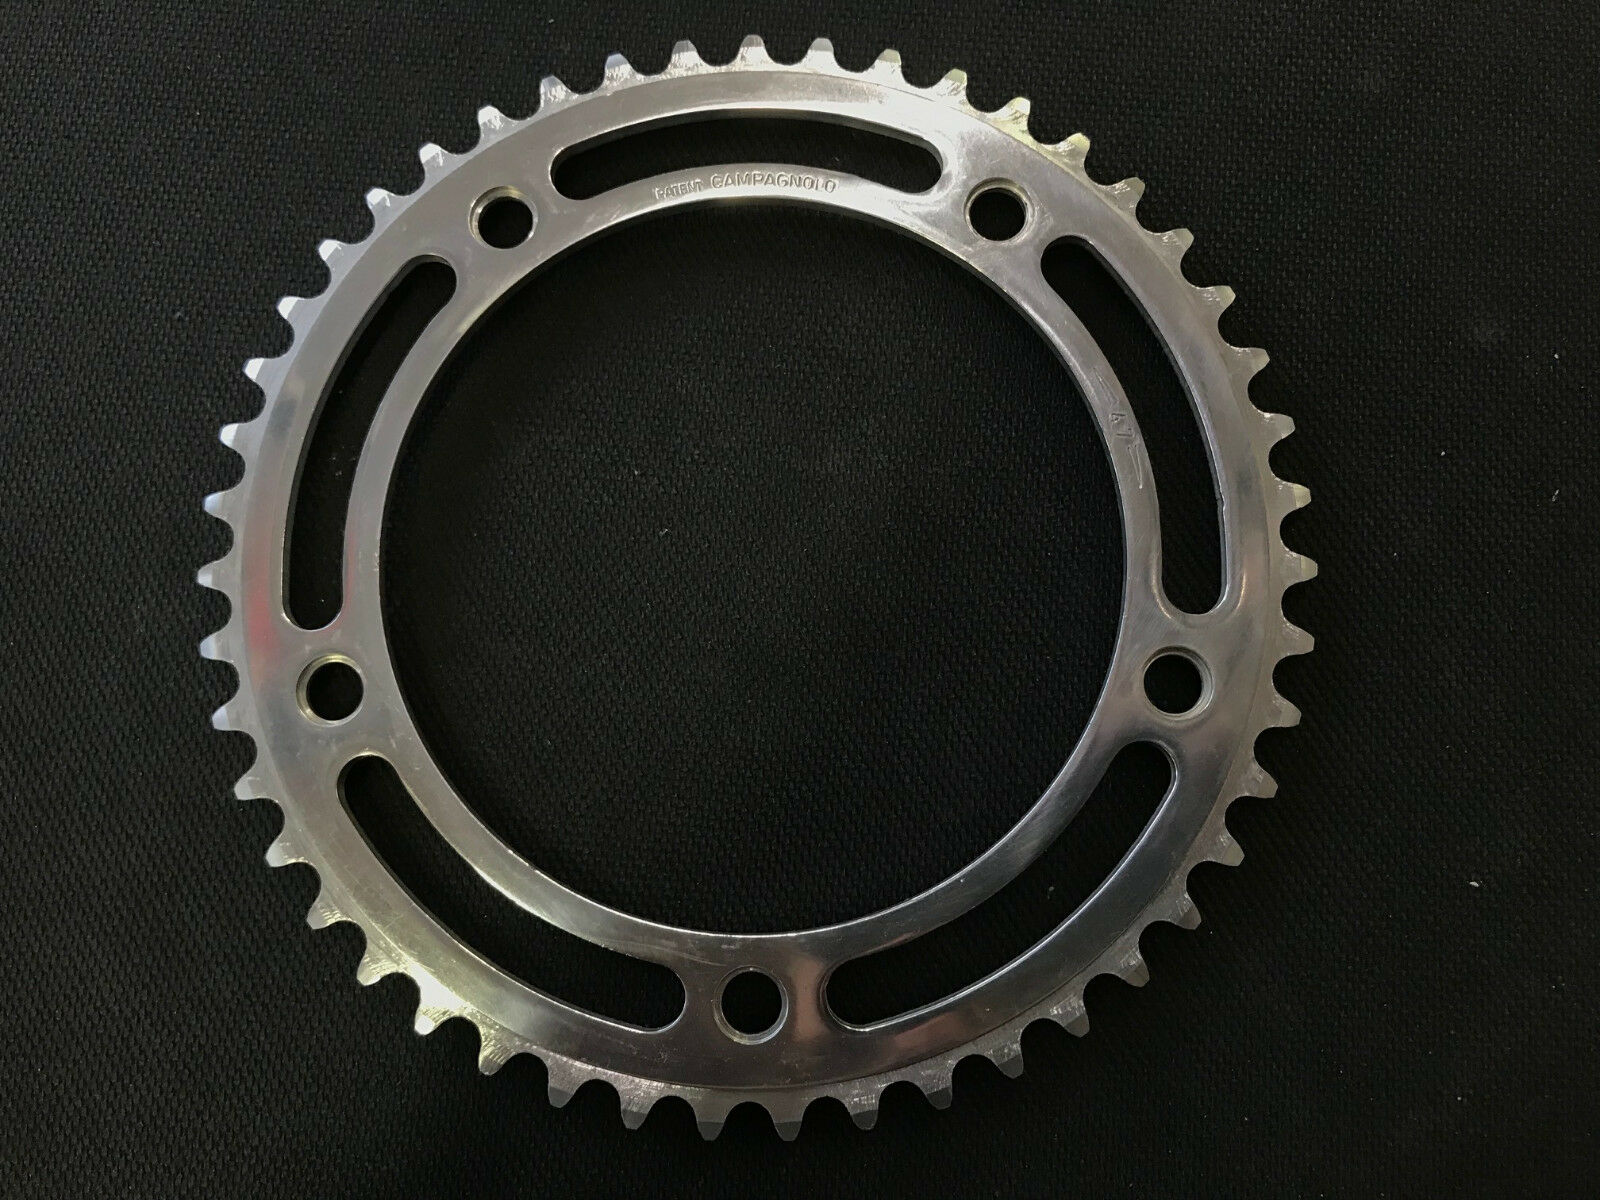 Campagnolo Record Pista Chainring 47t 151BCD  1 8  Vintage Fixed Gear  a lot of surprises